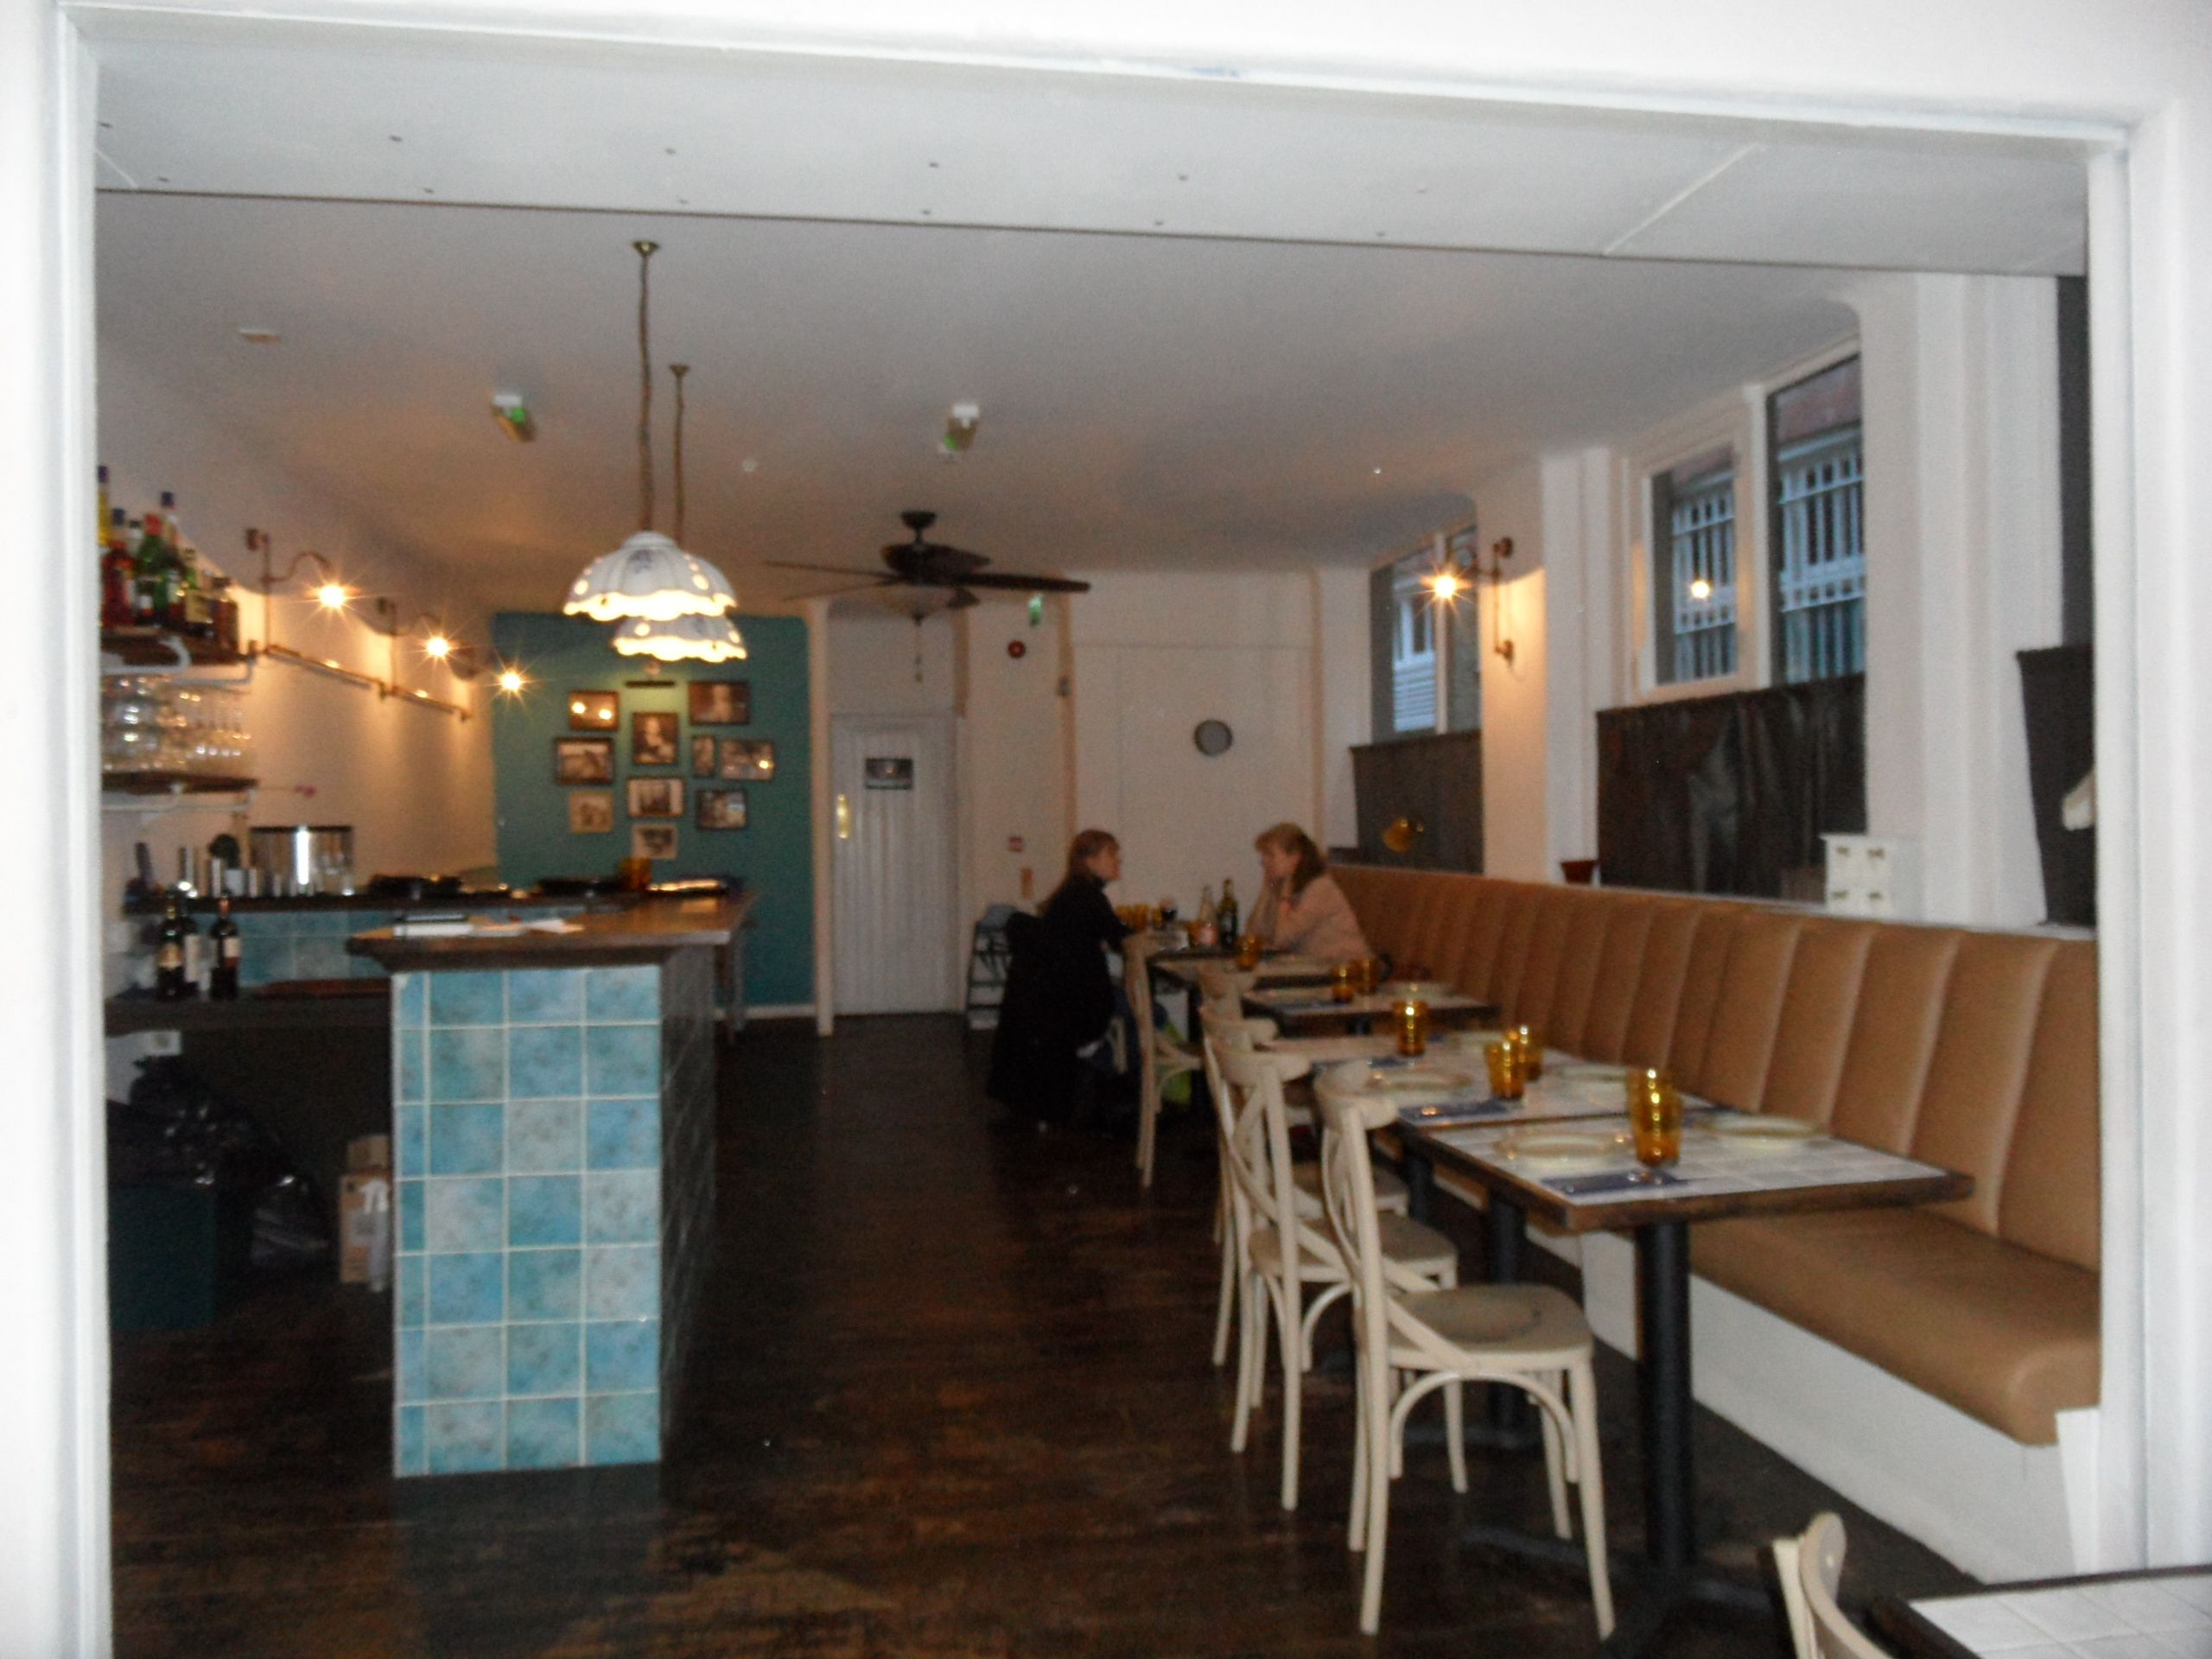 The upstairs restaurant section at Apulia